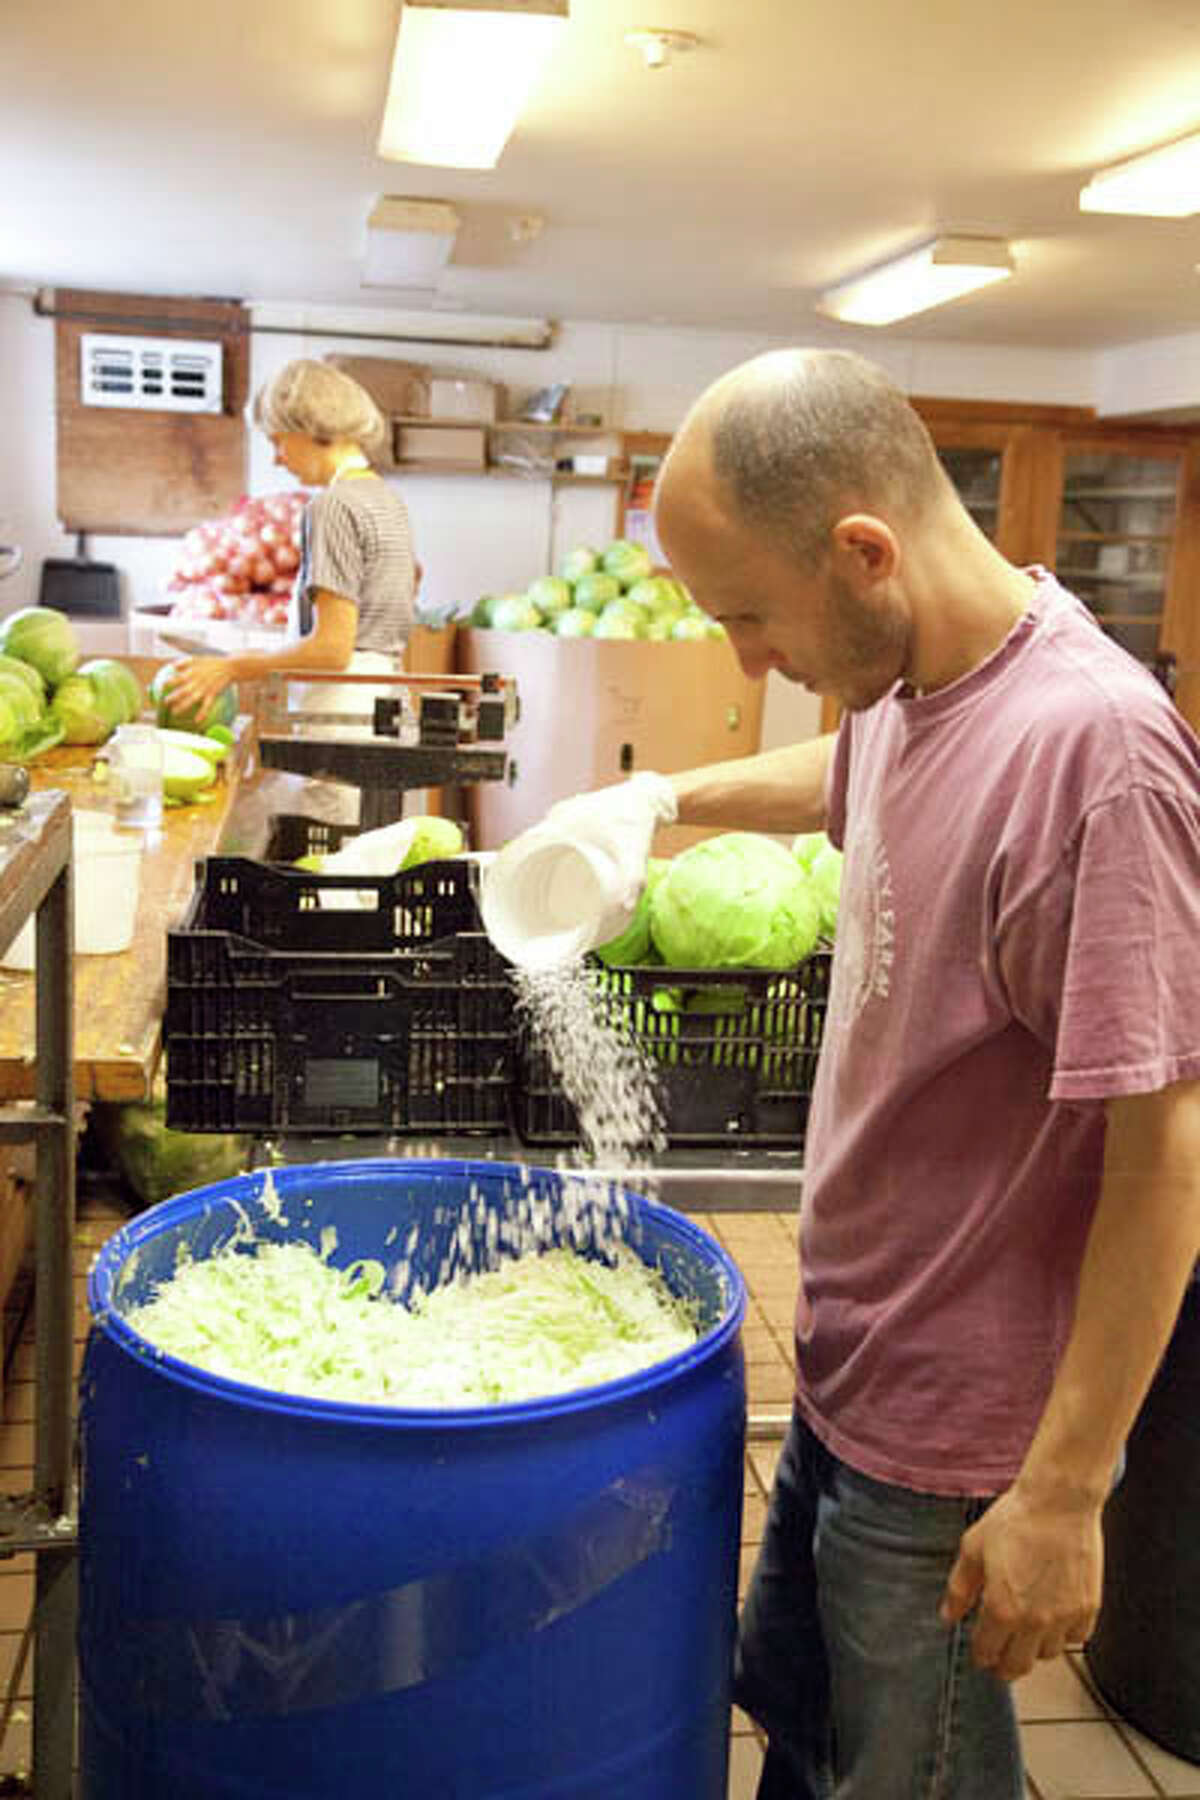 Making sauerkraut is easier than you think, according to Paul Hess, manager of the Kraut Cellar in Ghent. Read more here.